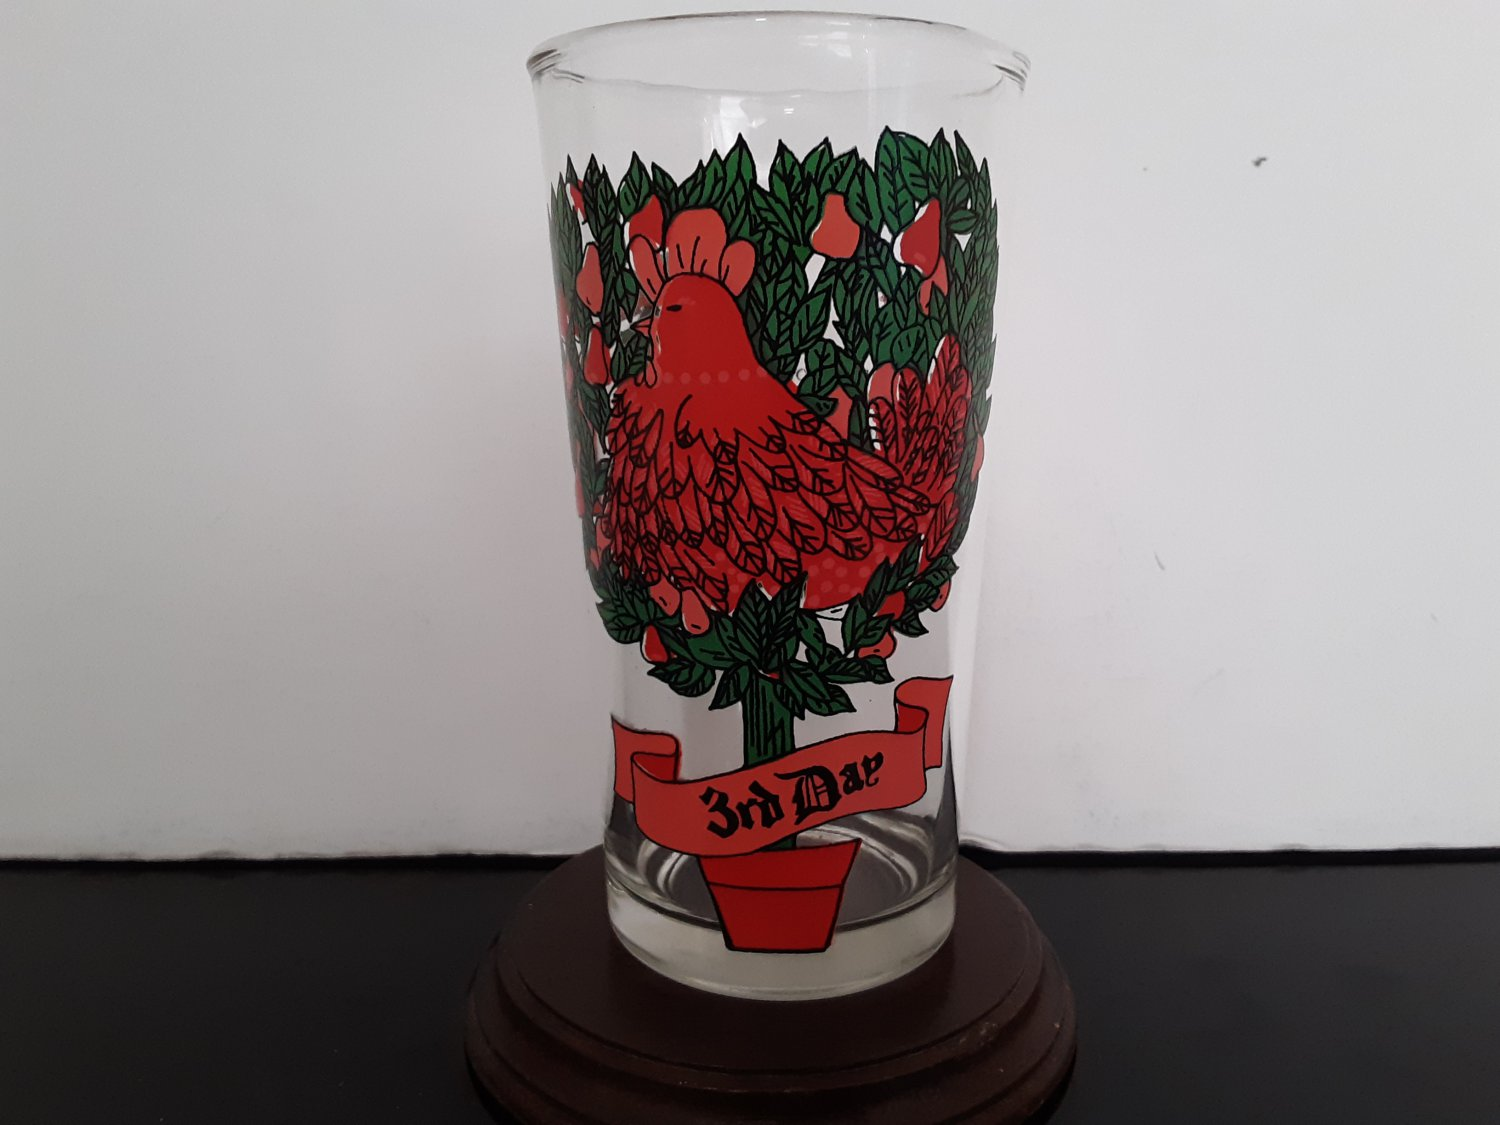 The 12 Days of Christmas Glass - 3rd Day - Replacement Glass